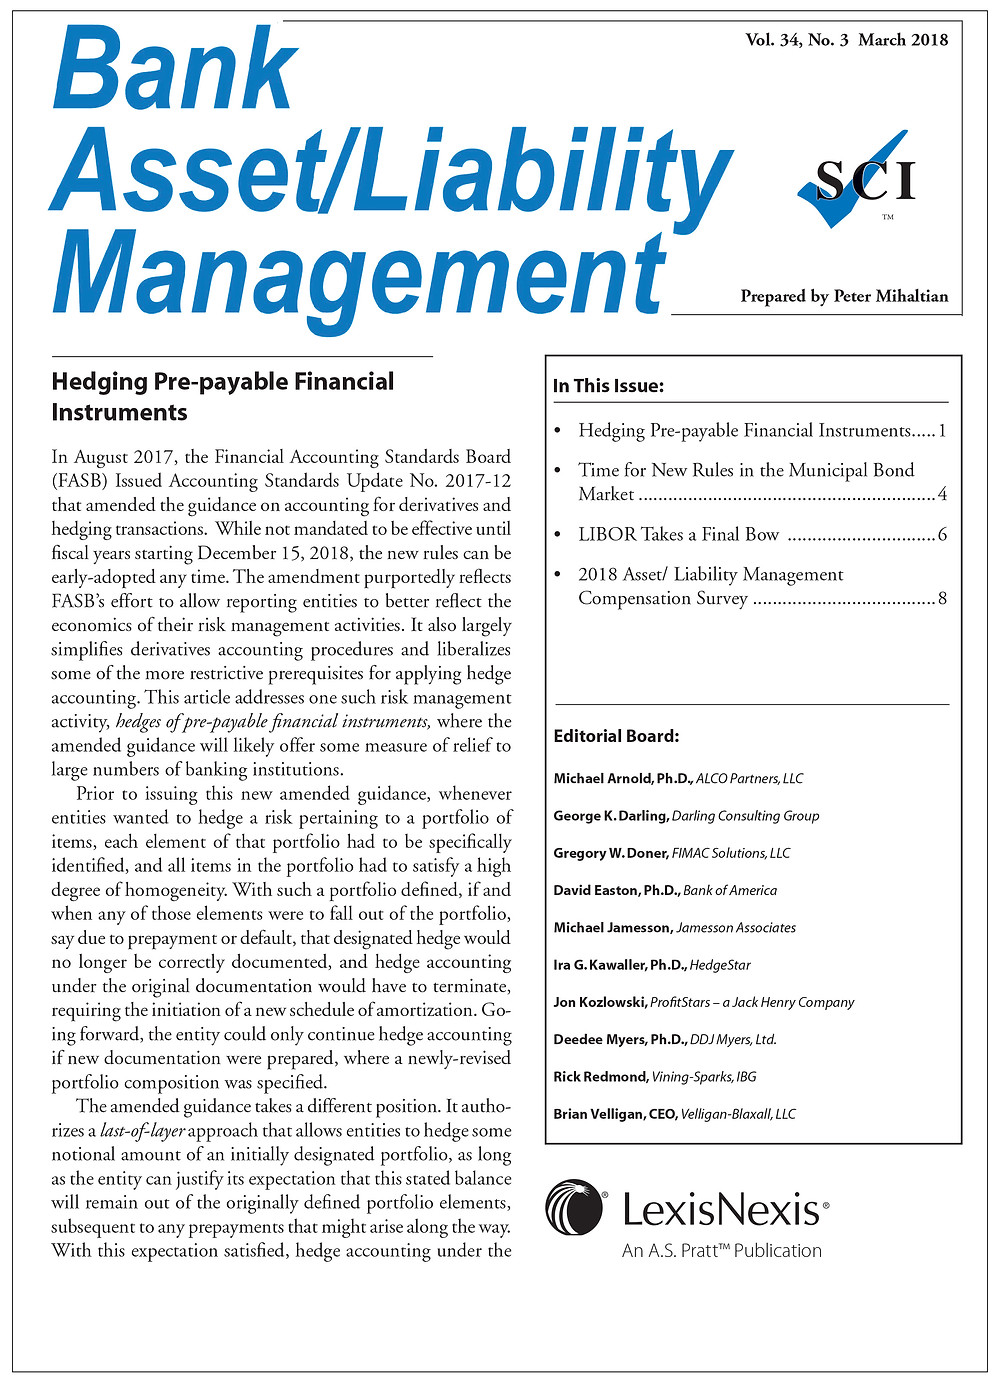 Hedging Pre-Payable Financial Instruments Article